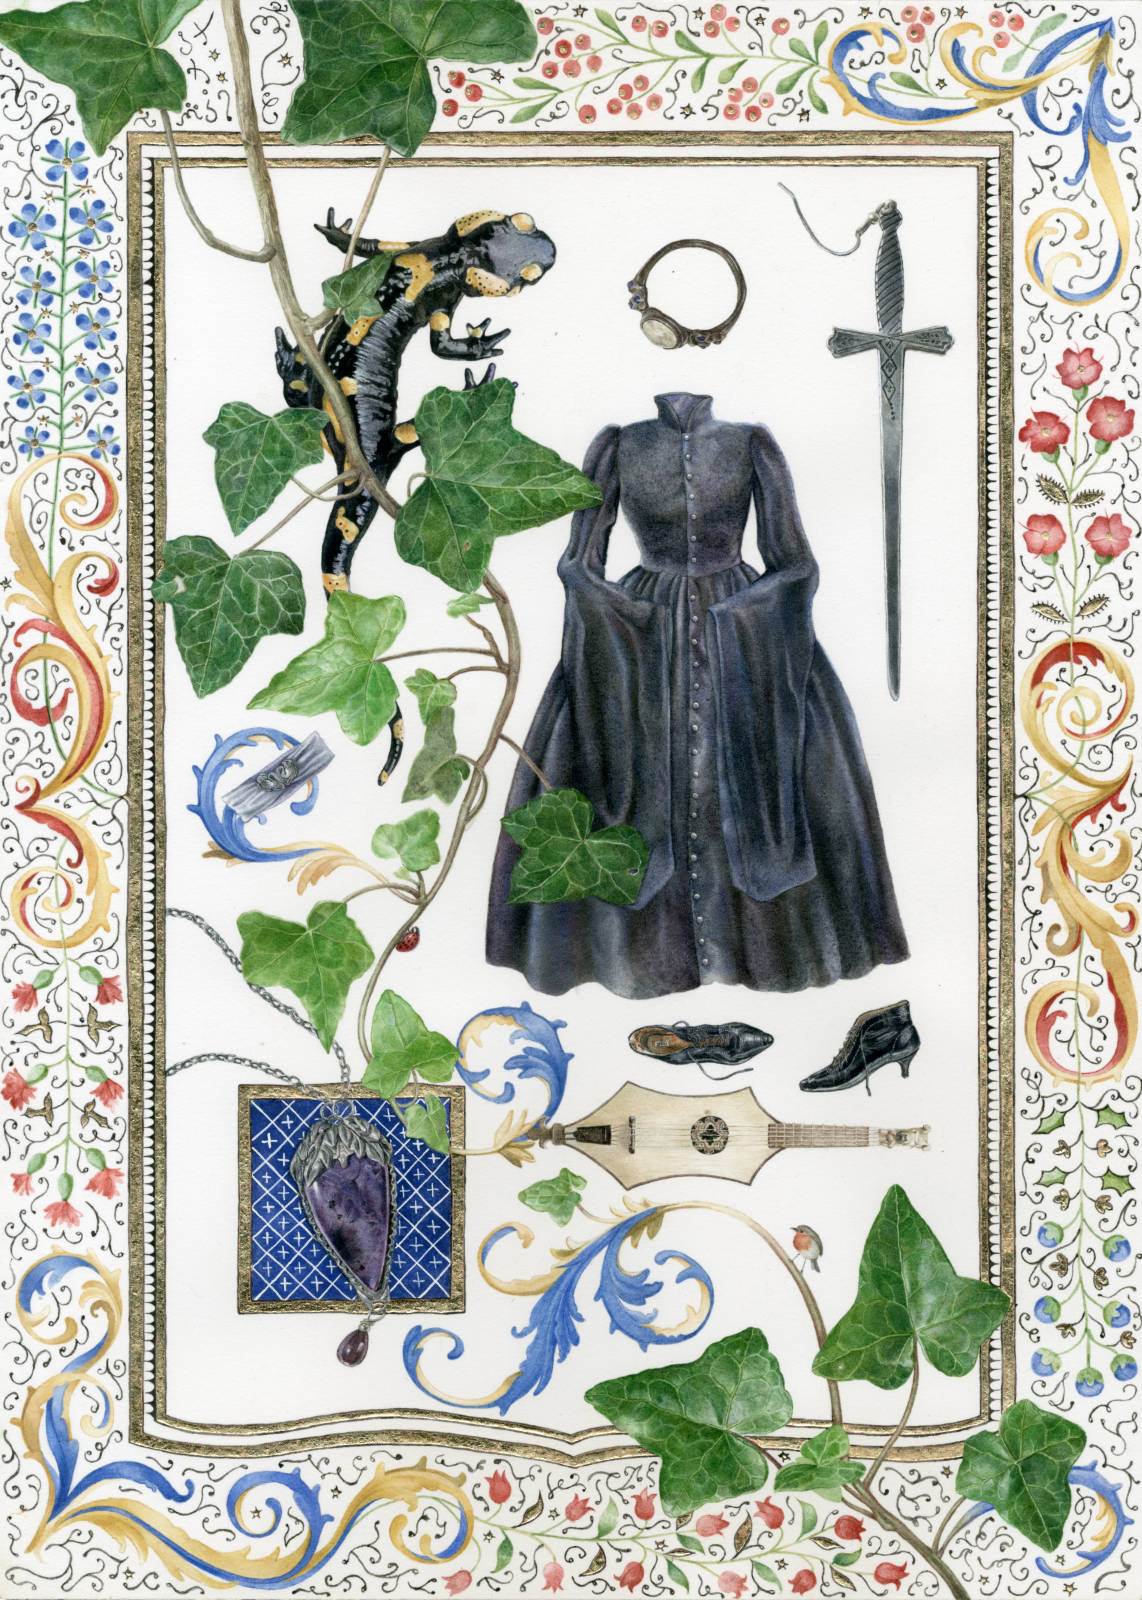 Technical illustration of a herbarium made up with fashionable lolita clothing, and an overall medieval theme : salamander, ivy, illuminations, clothing and jewellery inspired by chivalry, troubadours, sorcery and myths